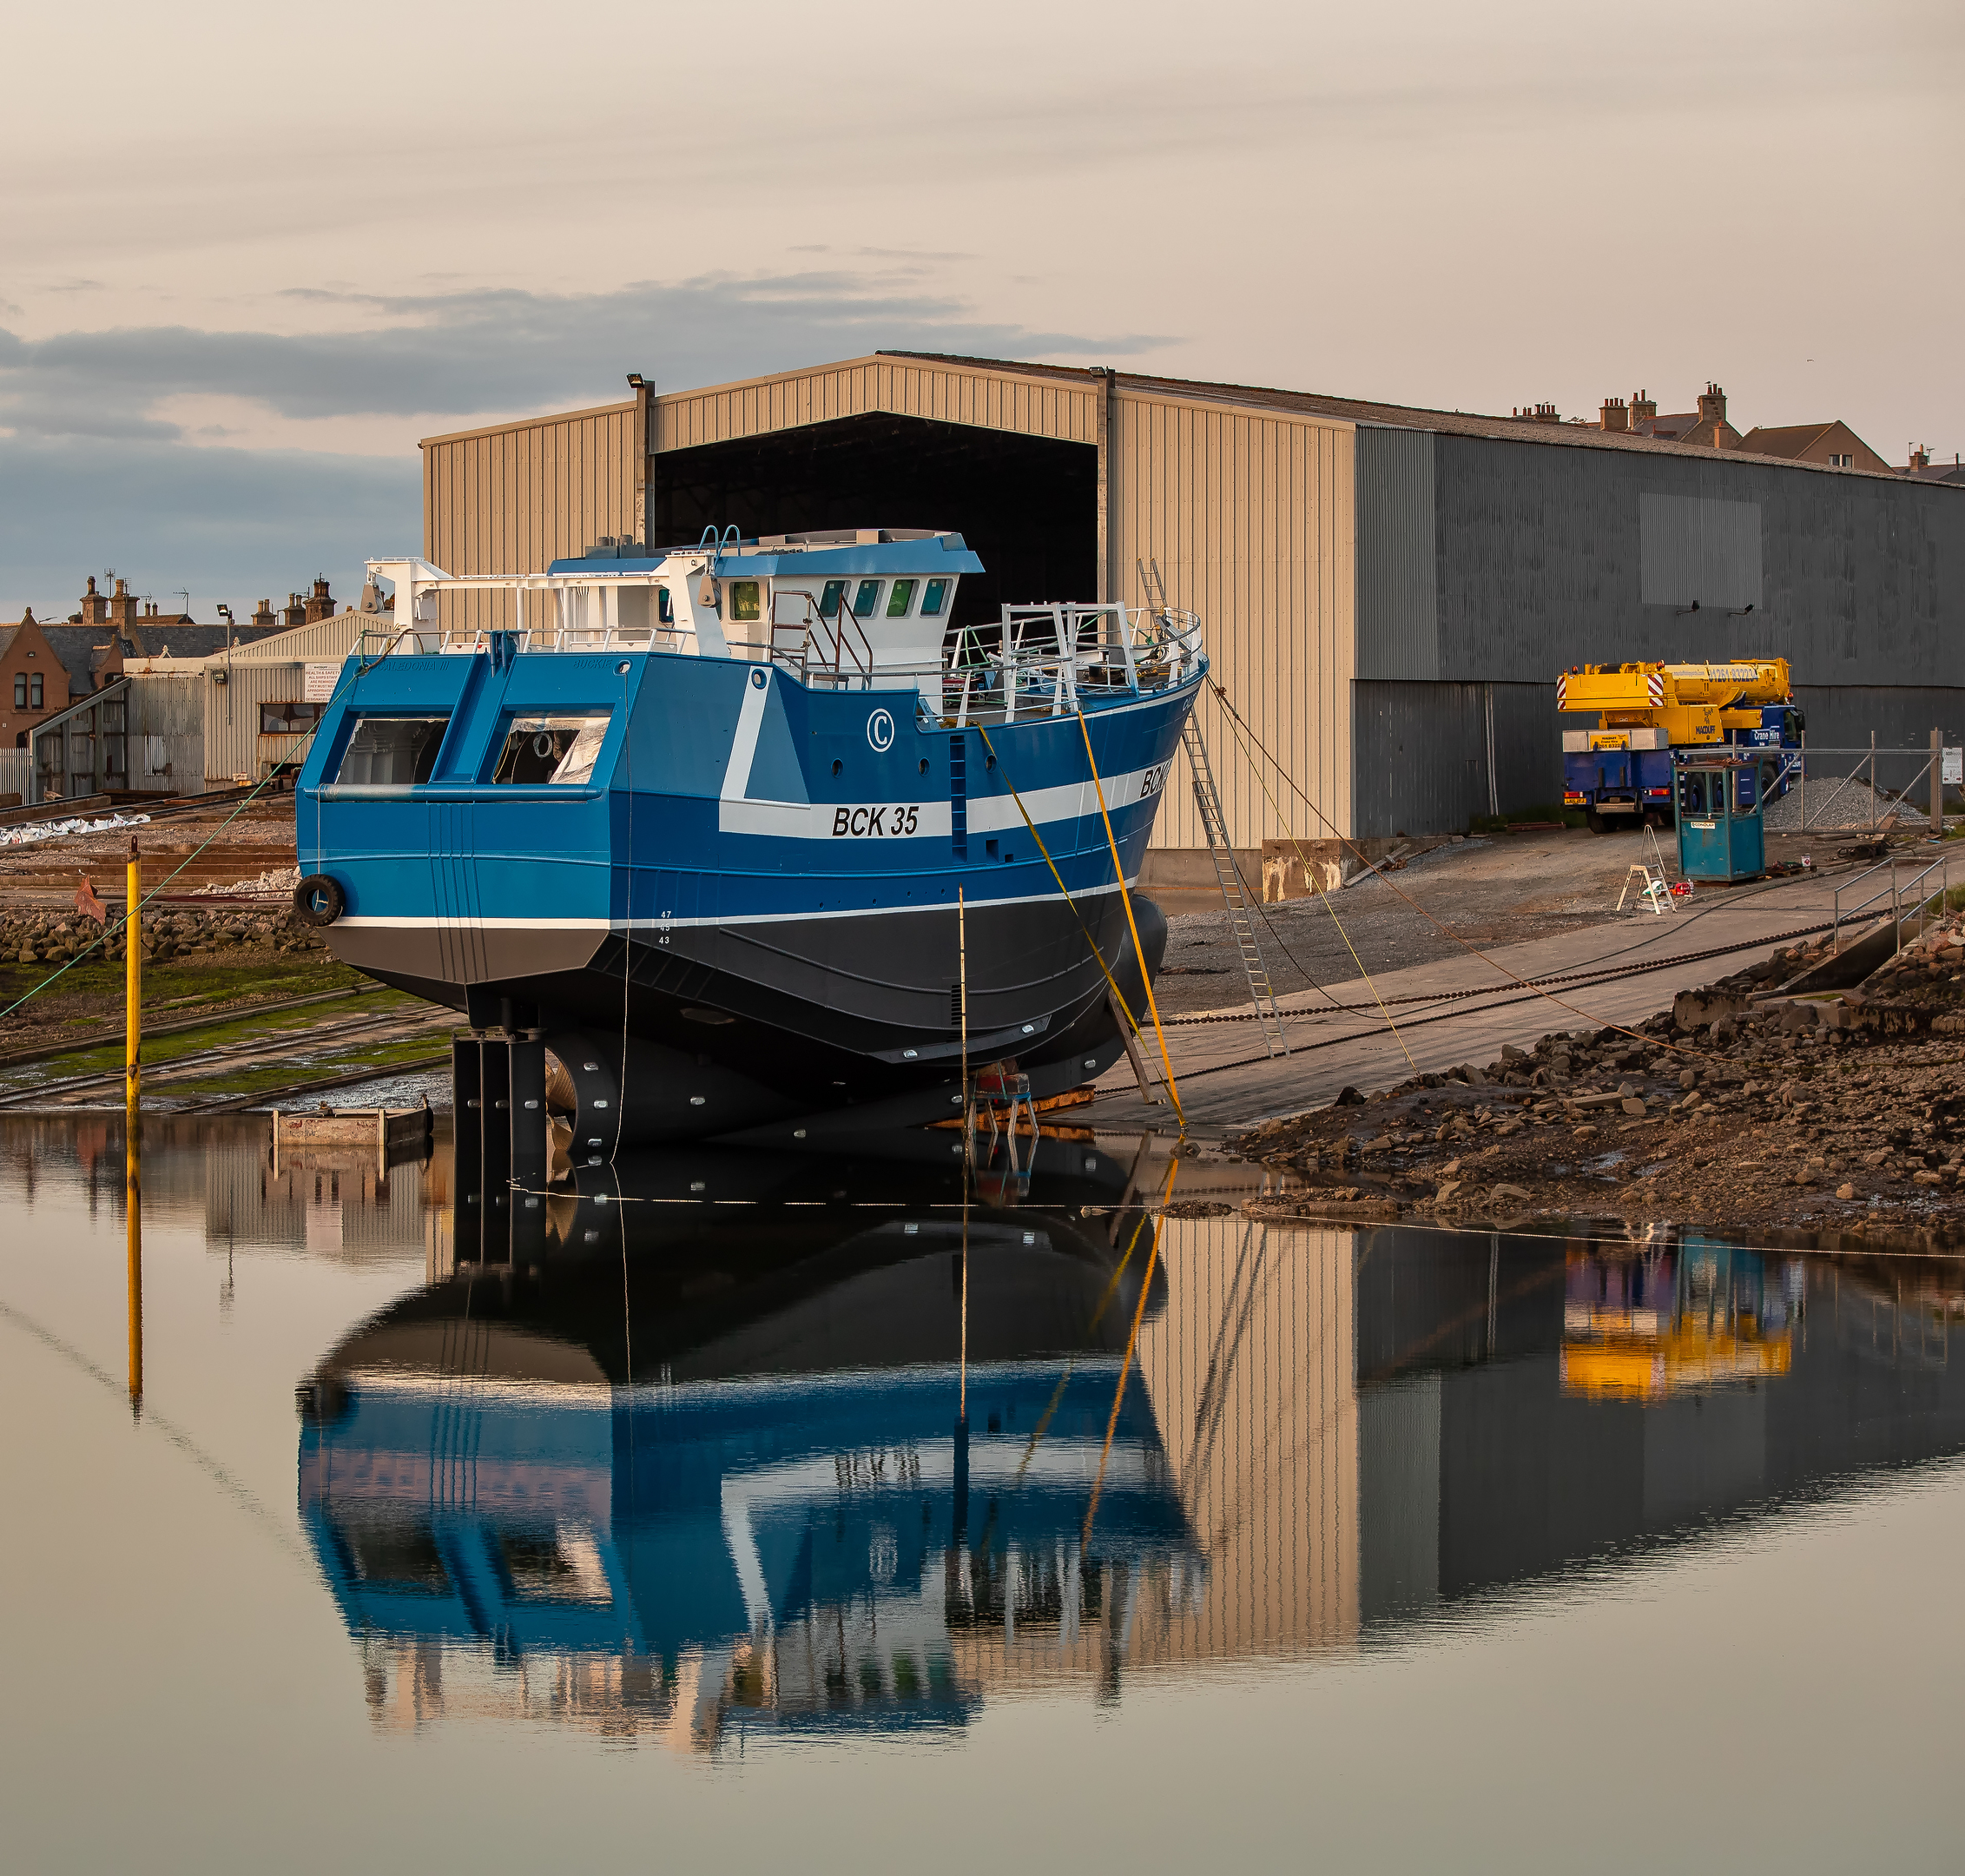 The Macduff Shipyards launch area at Buckie Harbour